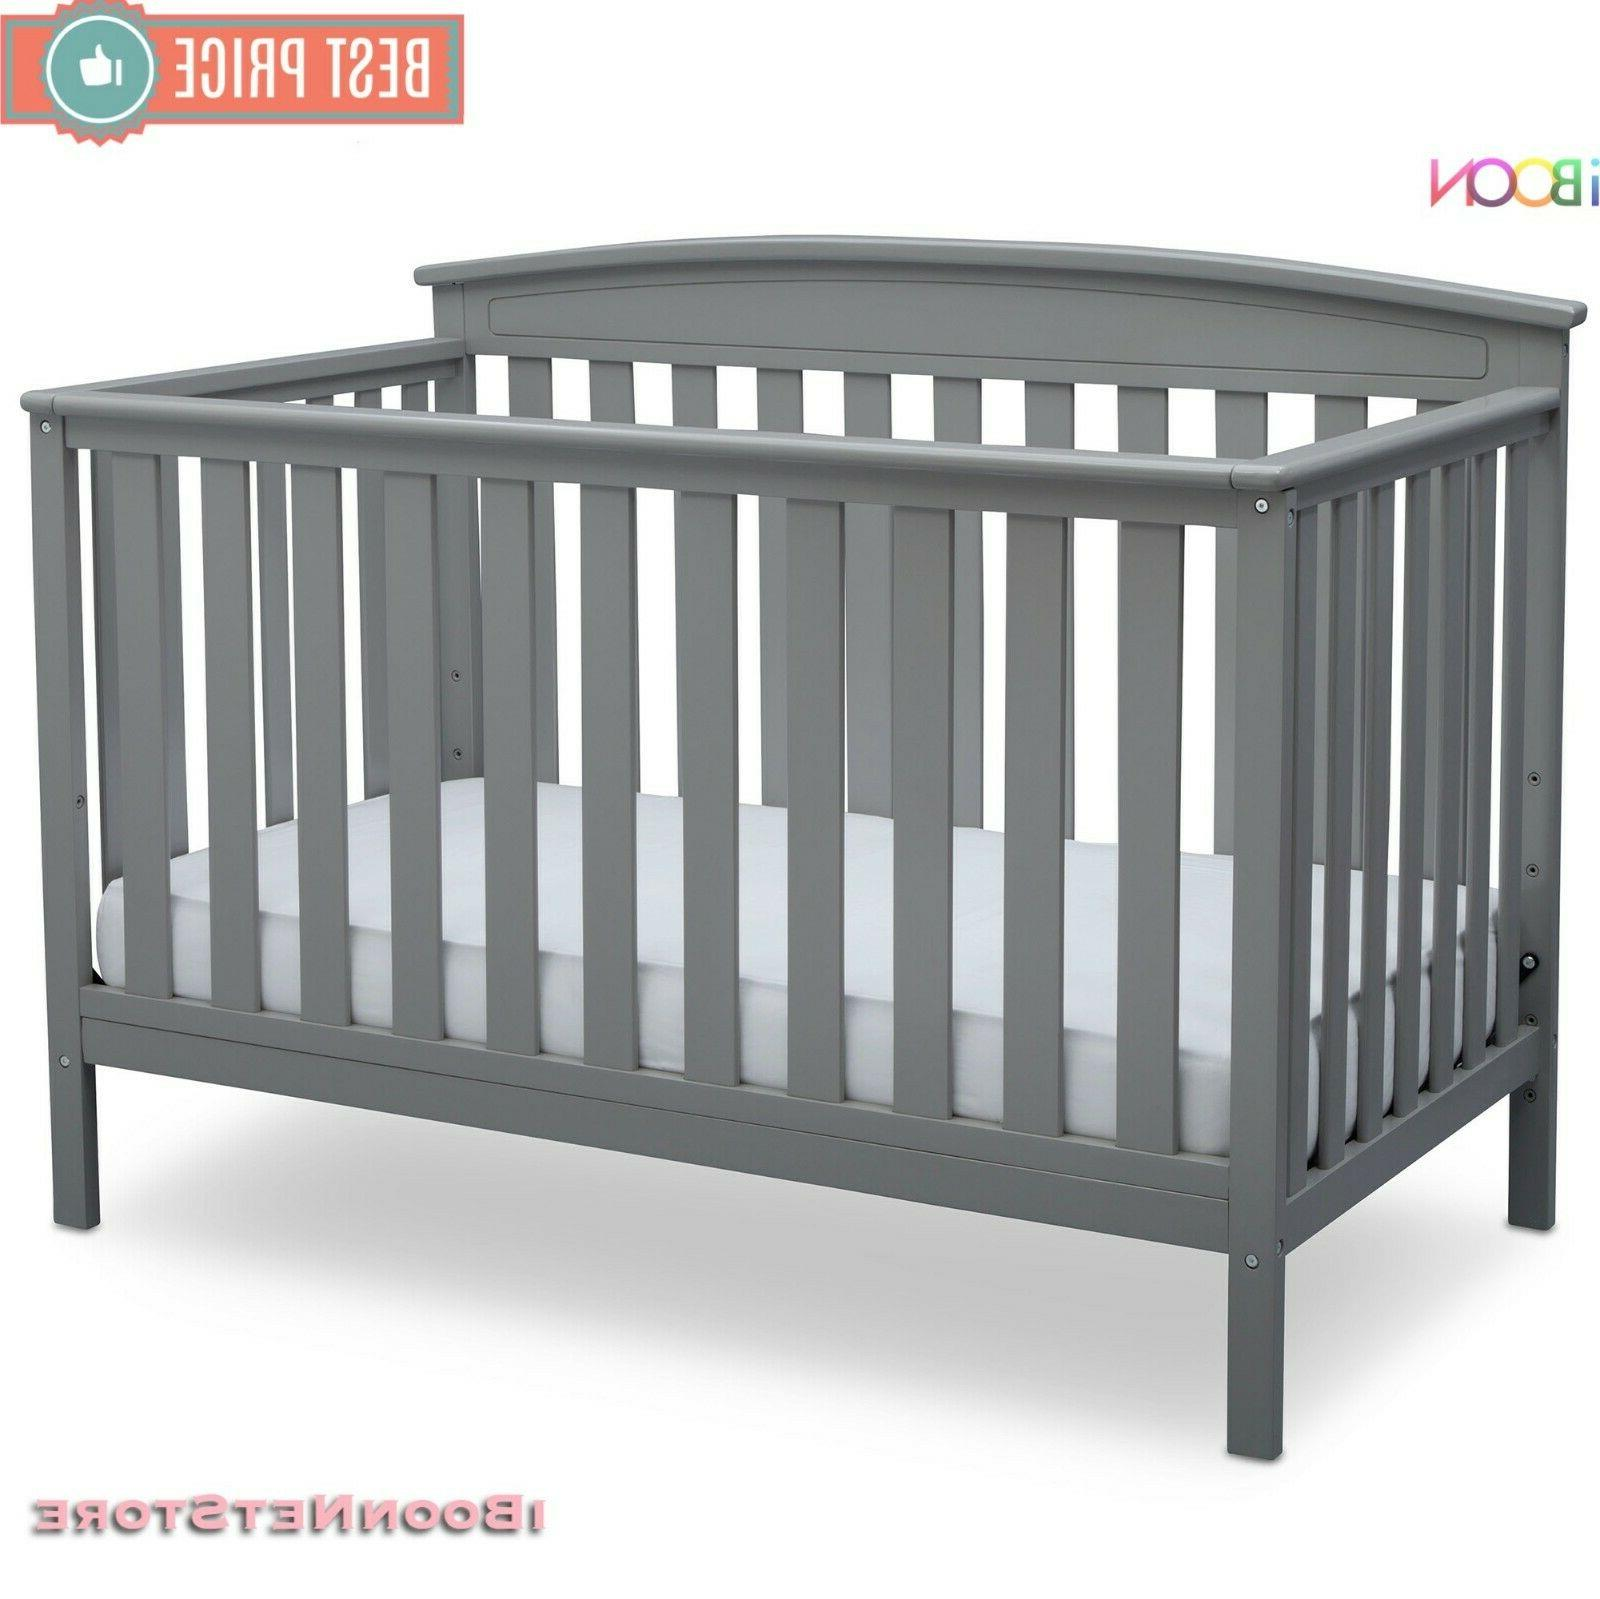 Adjustable Crib 4 in Convertible Wood Convert to BED